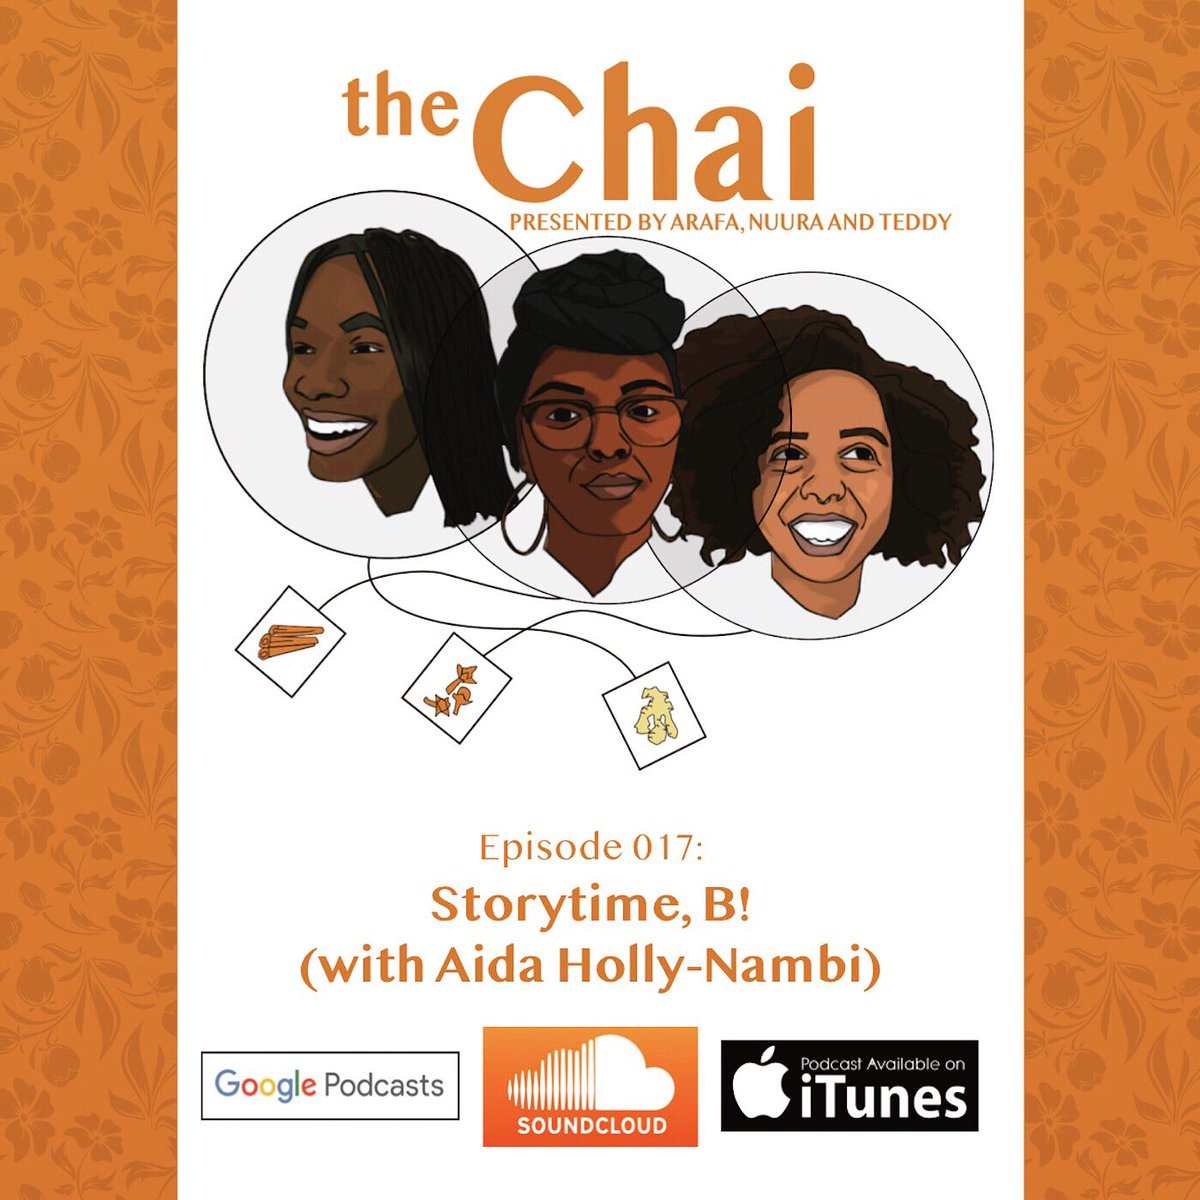 Episode 17 is here  in this episode we discuss our favourite artists owning their industries, the GoT finale and owning our own narratives. We are also joined by Aida Holly-Nambi from @Afroqueerpod , for an interview about storytelling <br>http://pic.twitter.com/QTVIWNi96X